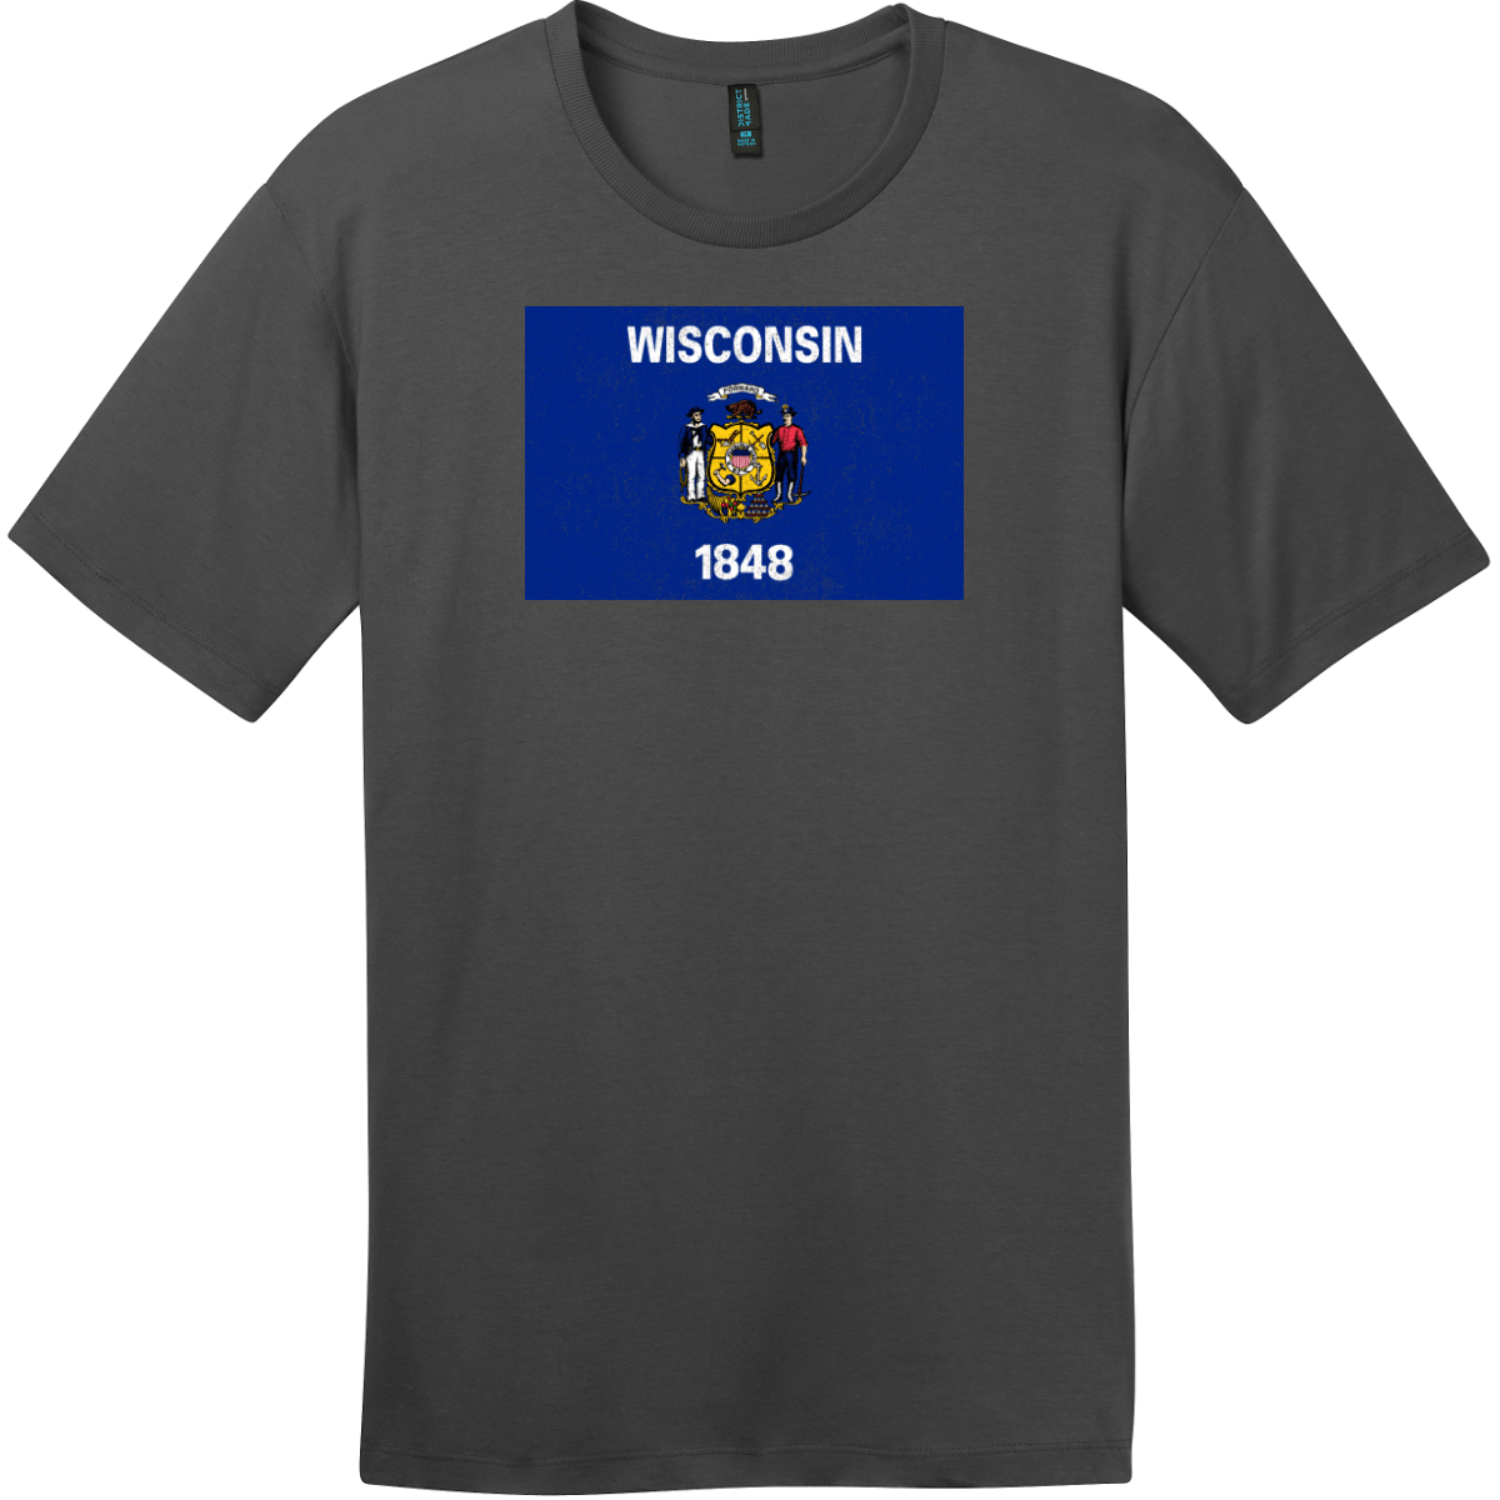 Wisconsin Flag Vintage T-Shirt Charcoal District Perfect Weight Tee DT104